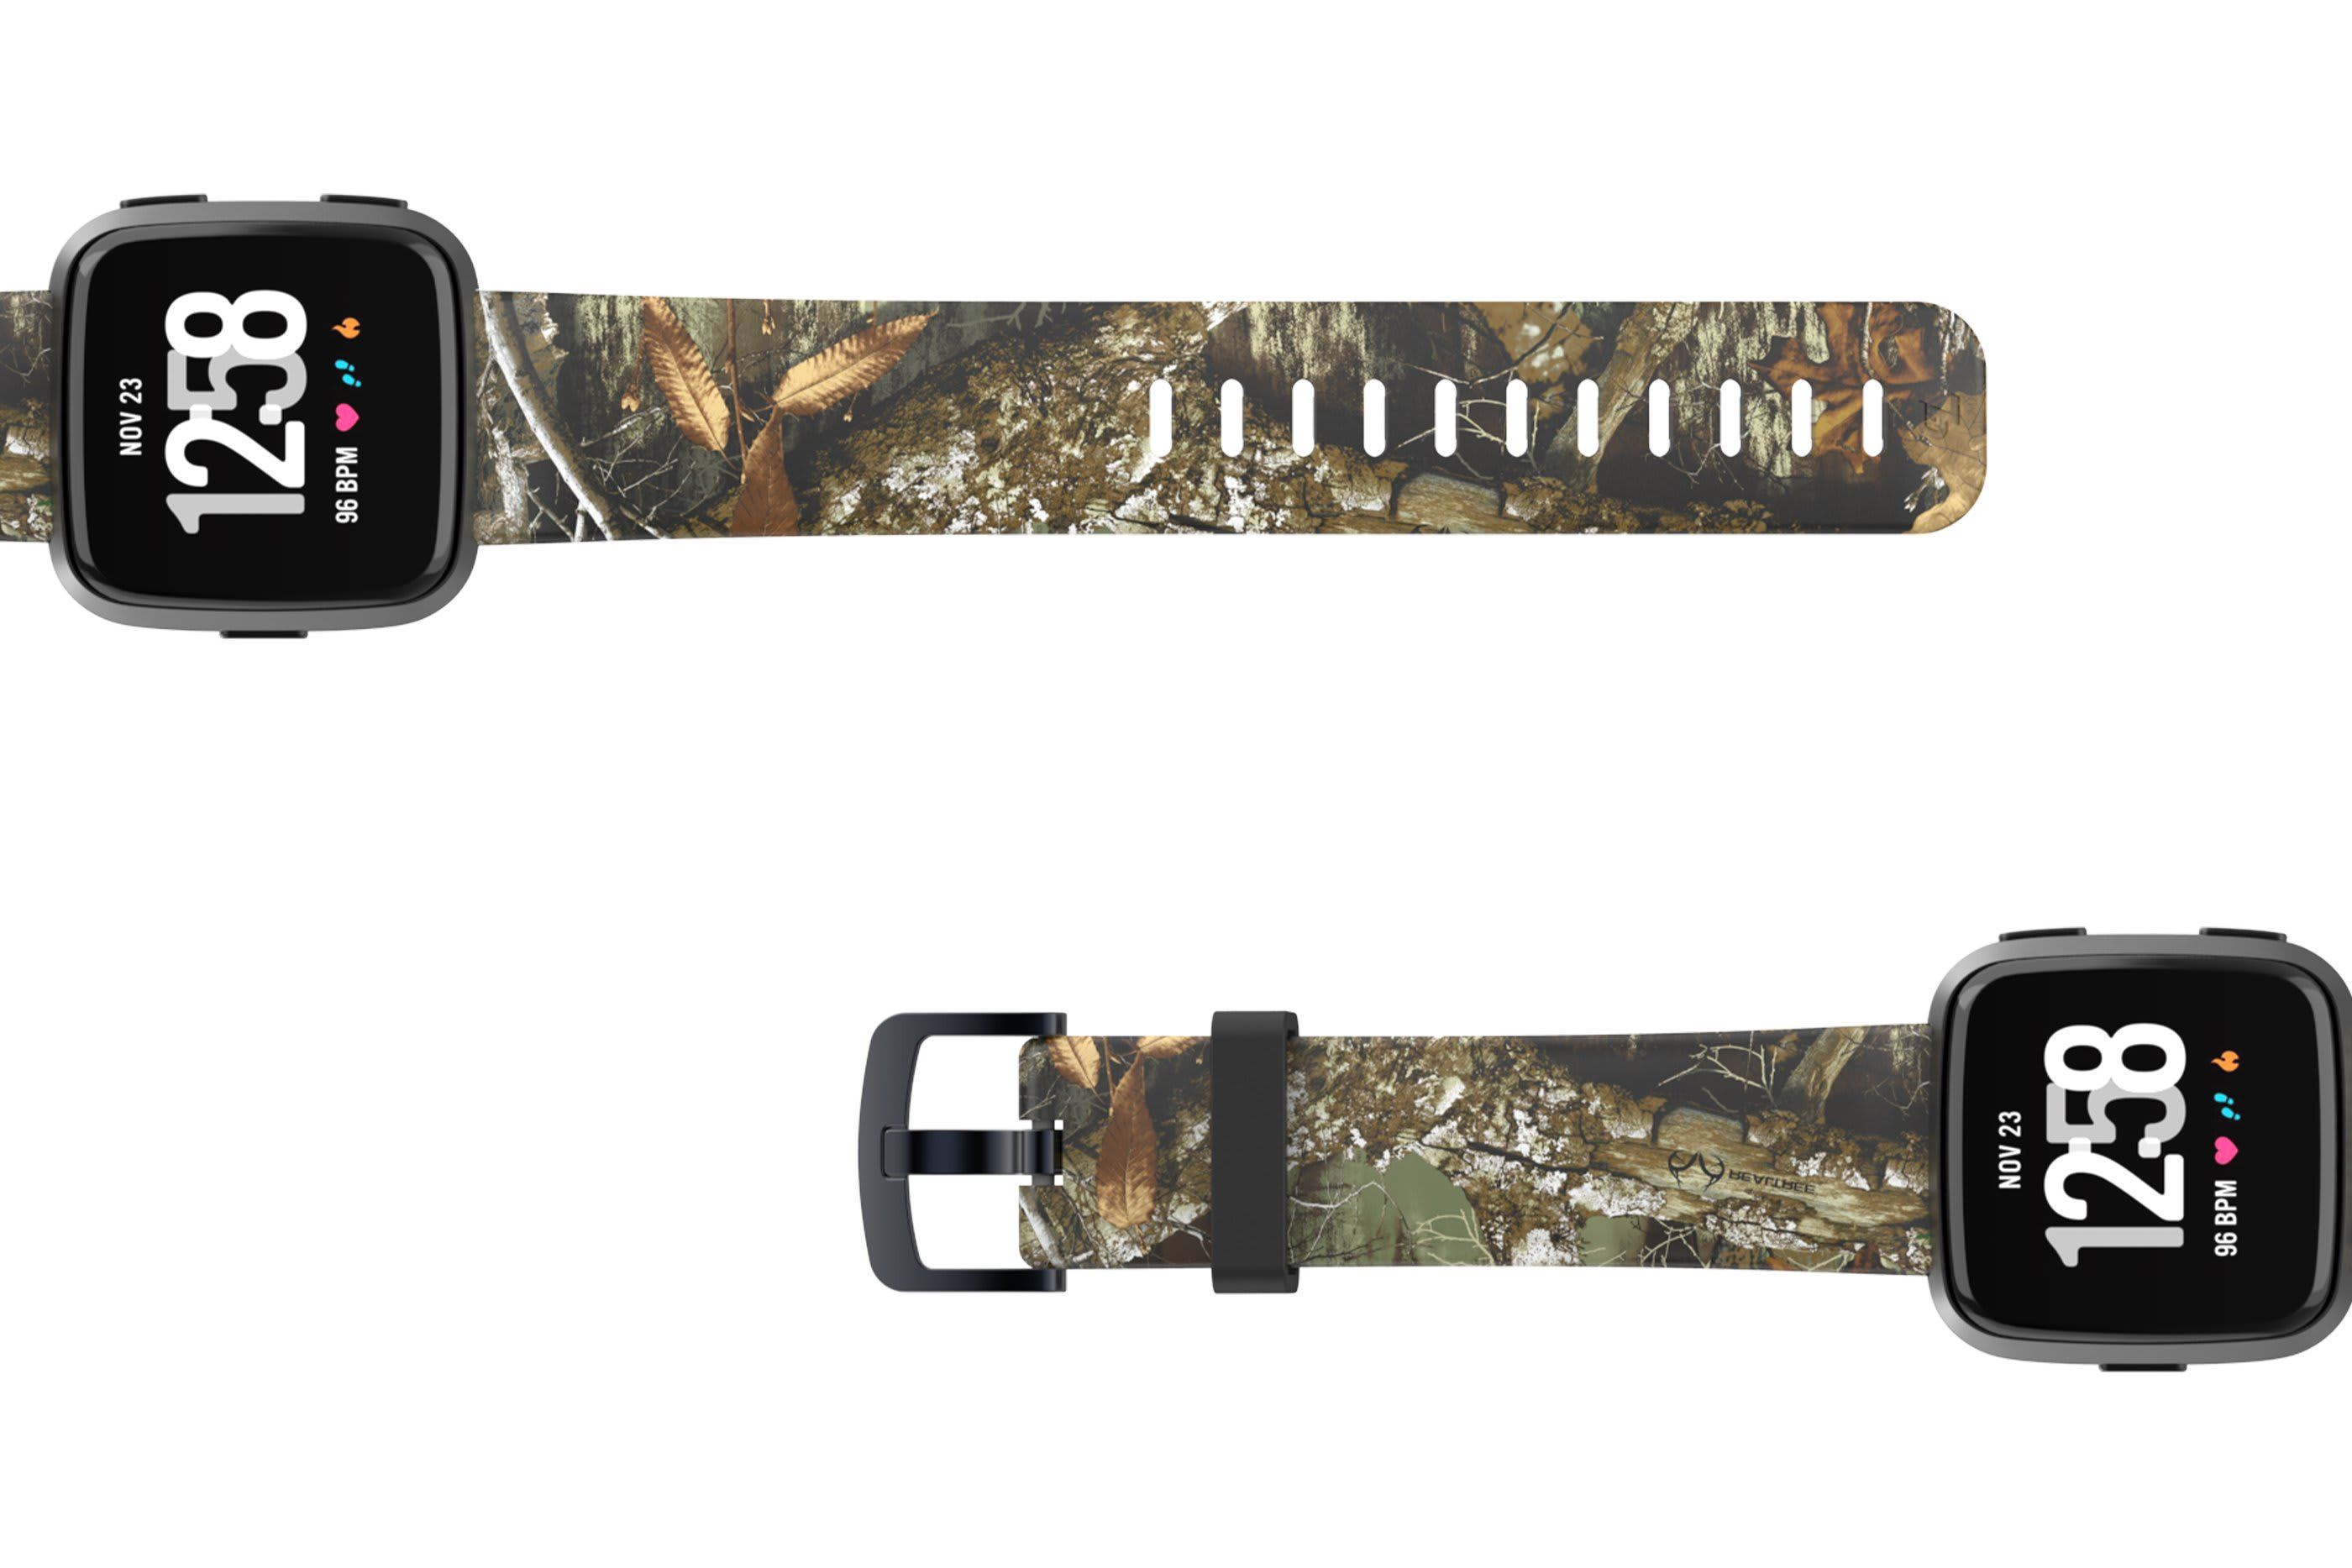 Realtree Edge Fitbit Versa watch band viewed top down